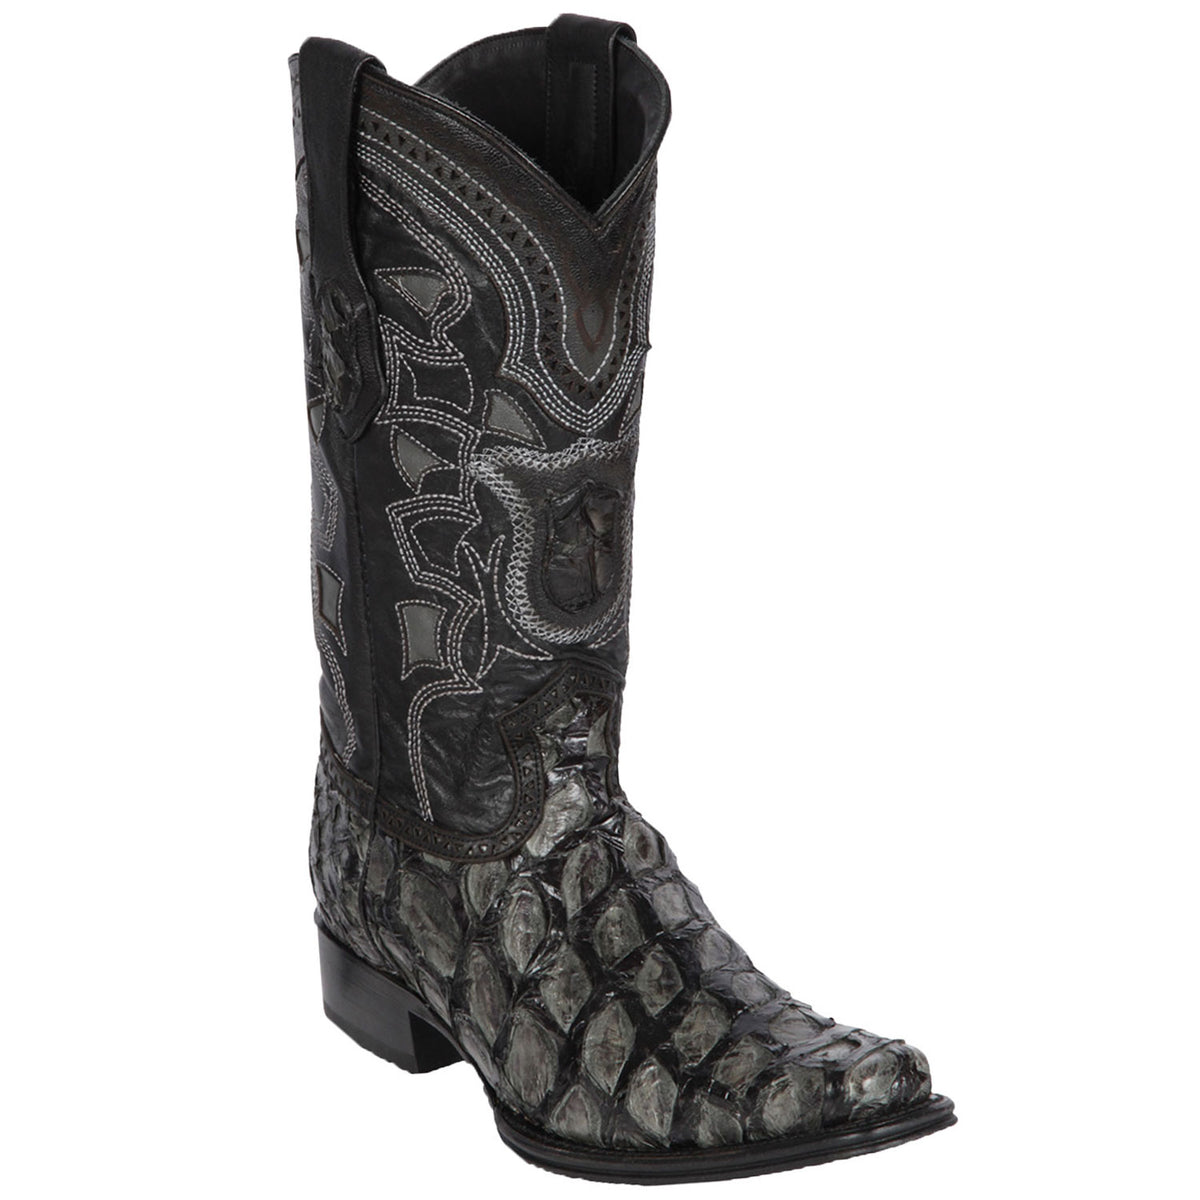 Pirarucu Skin Boot LAB-7610